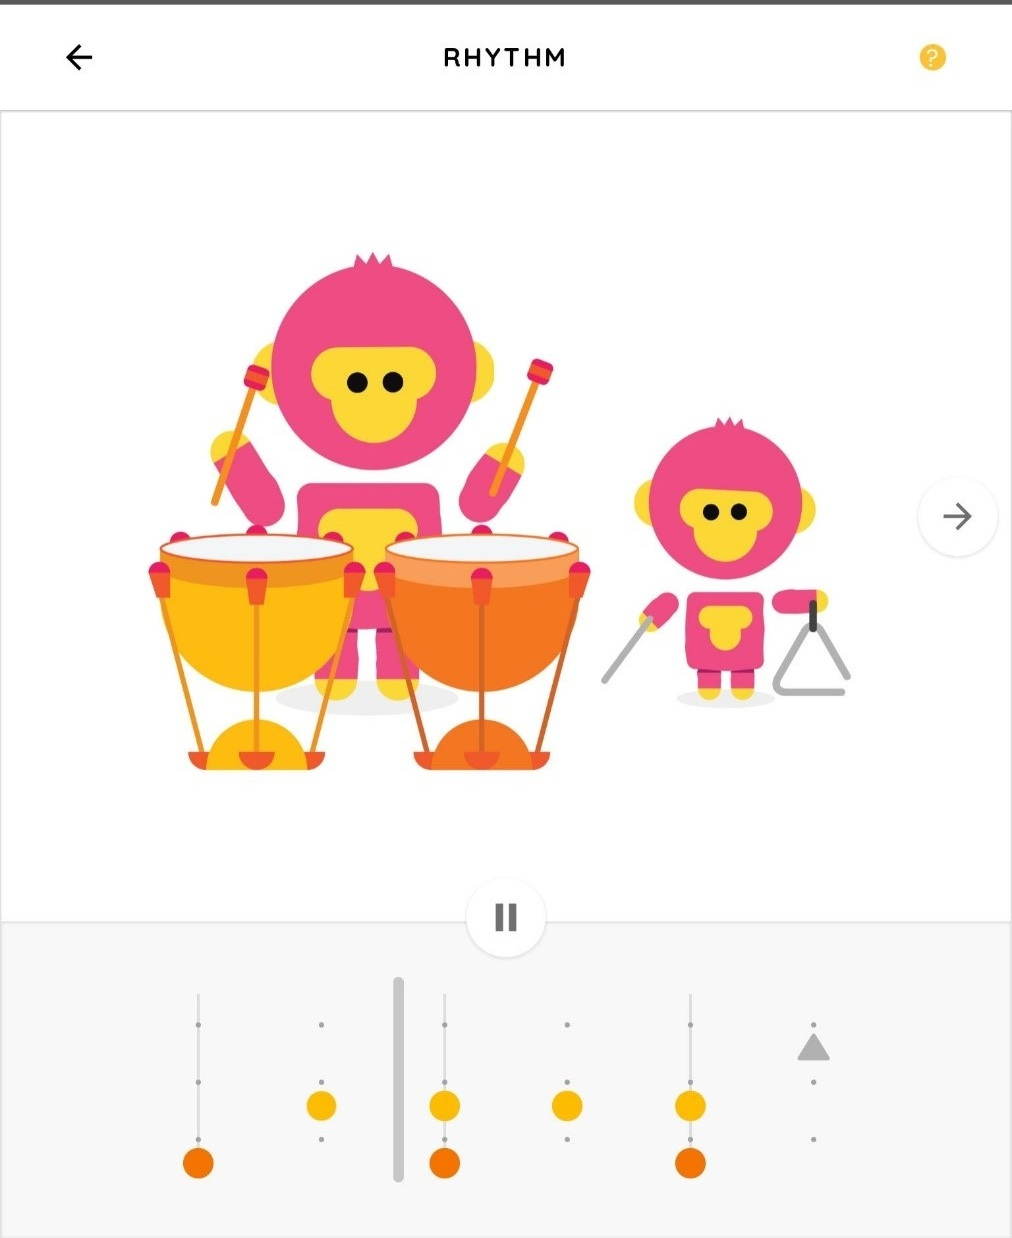 The rhythm experiment can be used to teach fractions and math skills